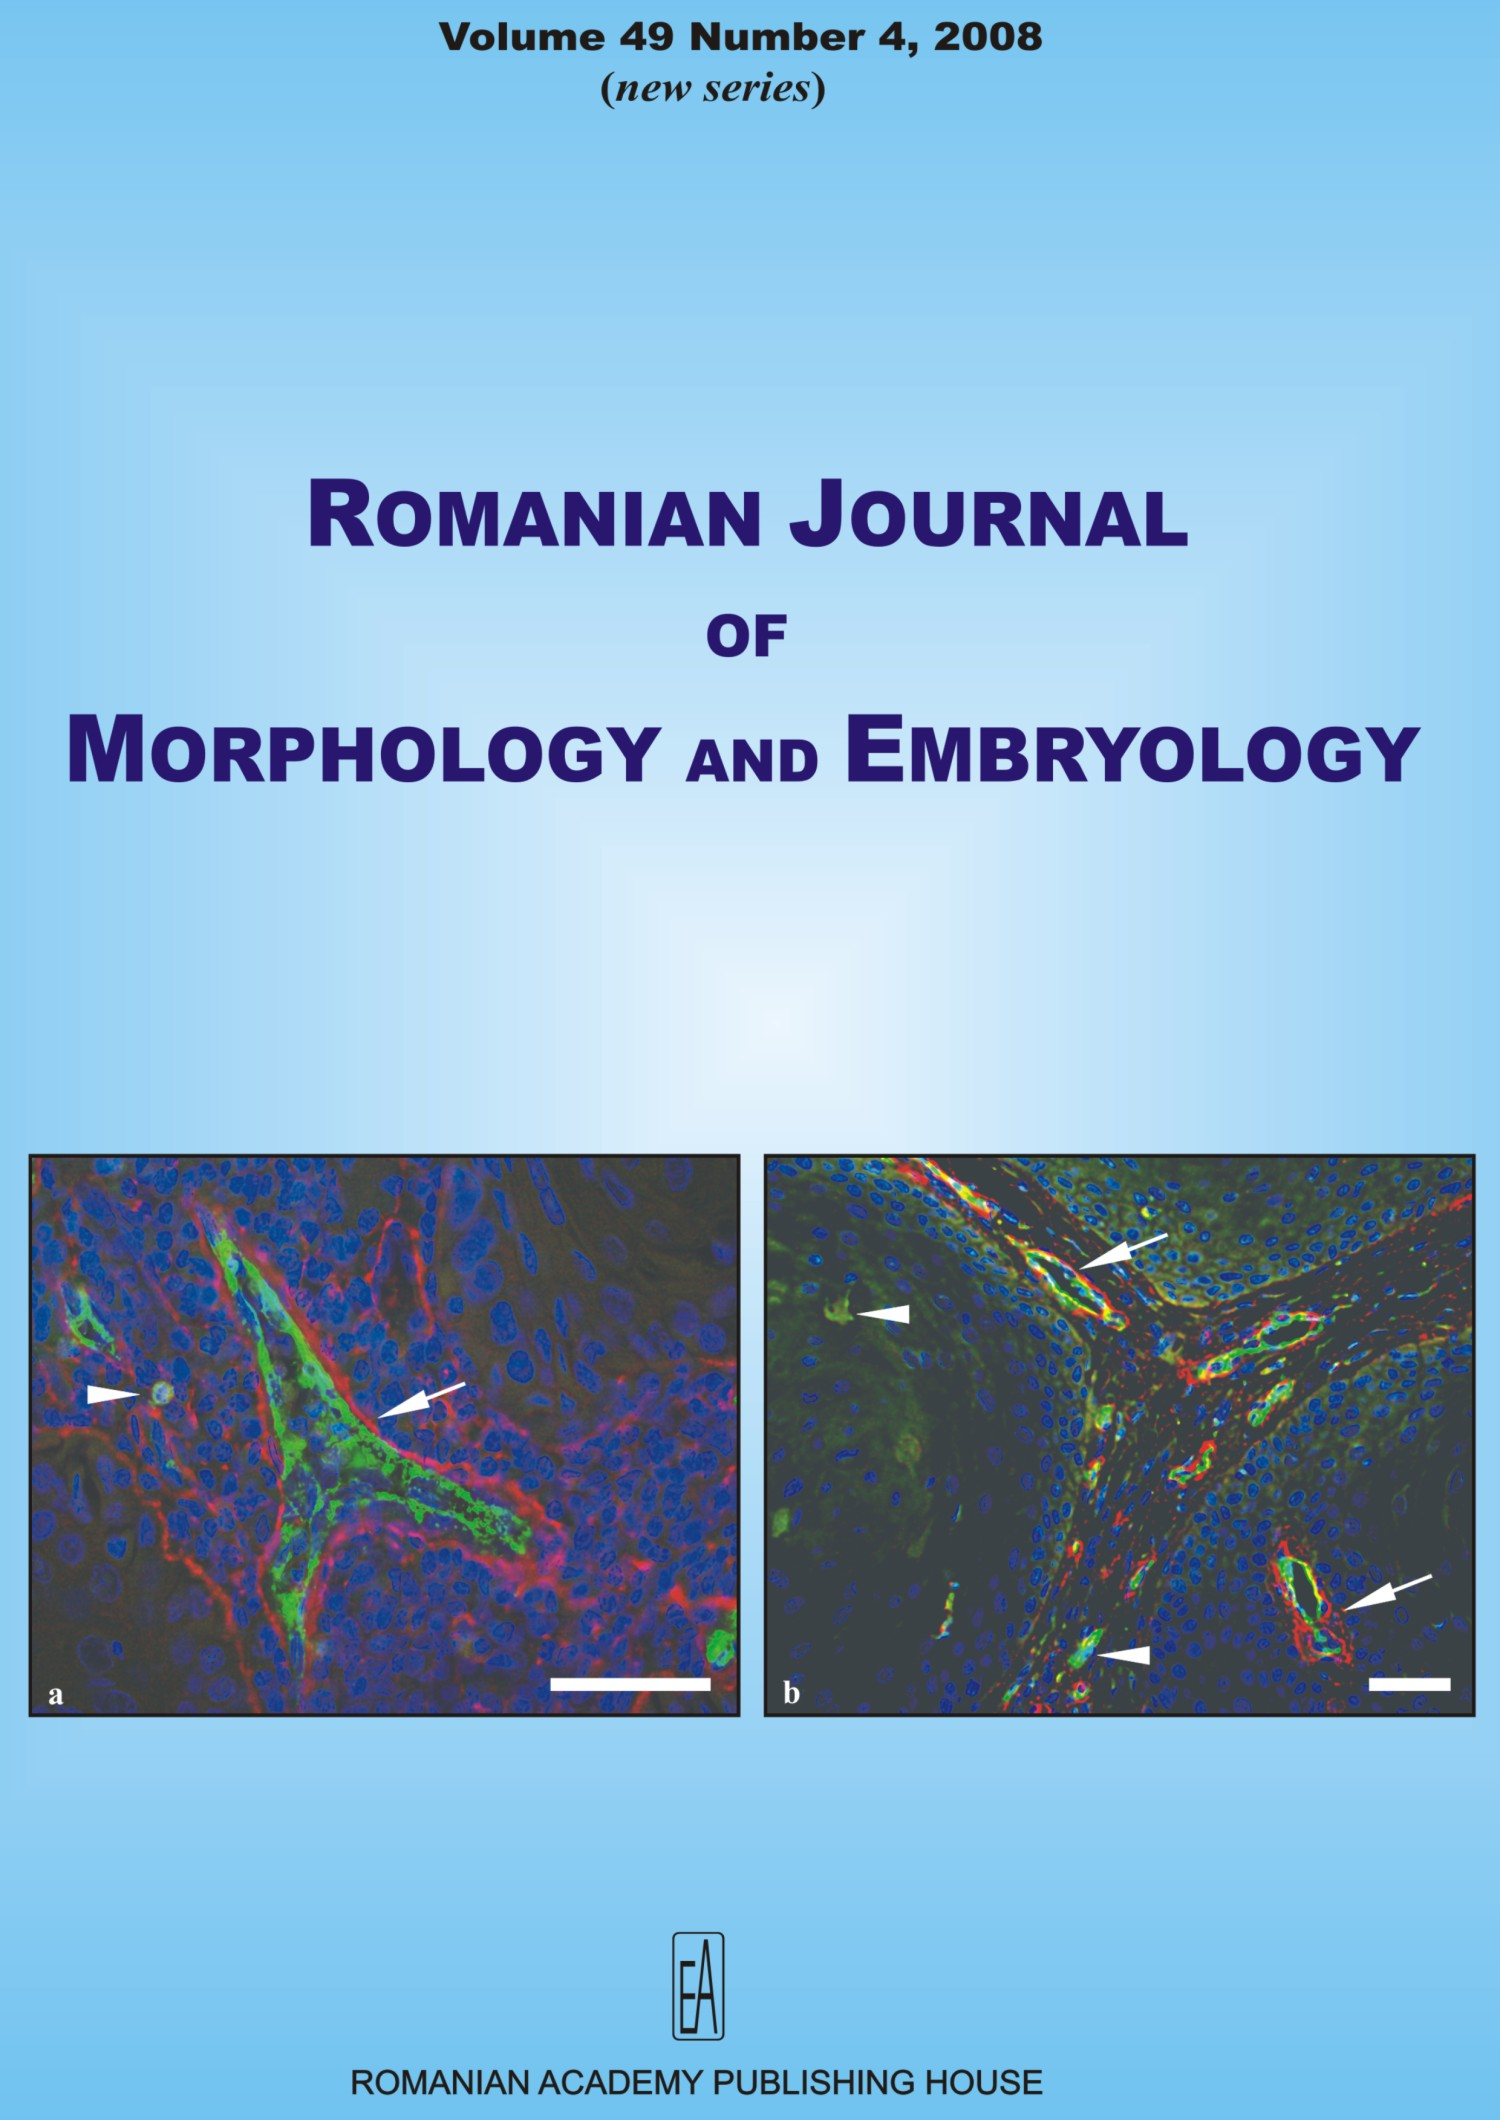 Romanian Journal of Morphology and Embryology, vol. 49 no. 4, 2008